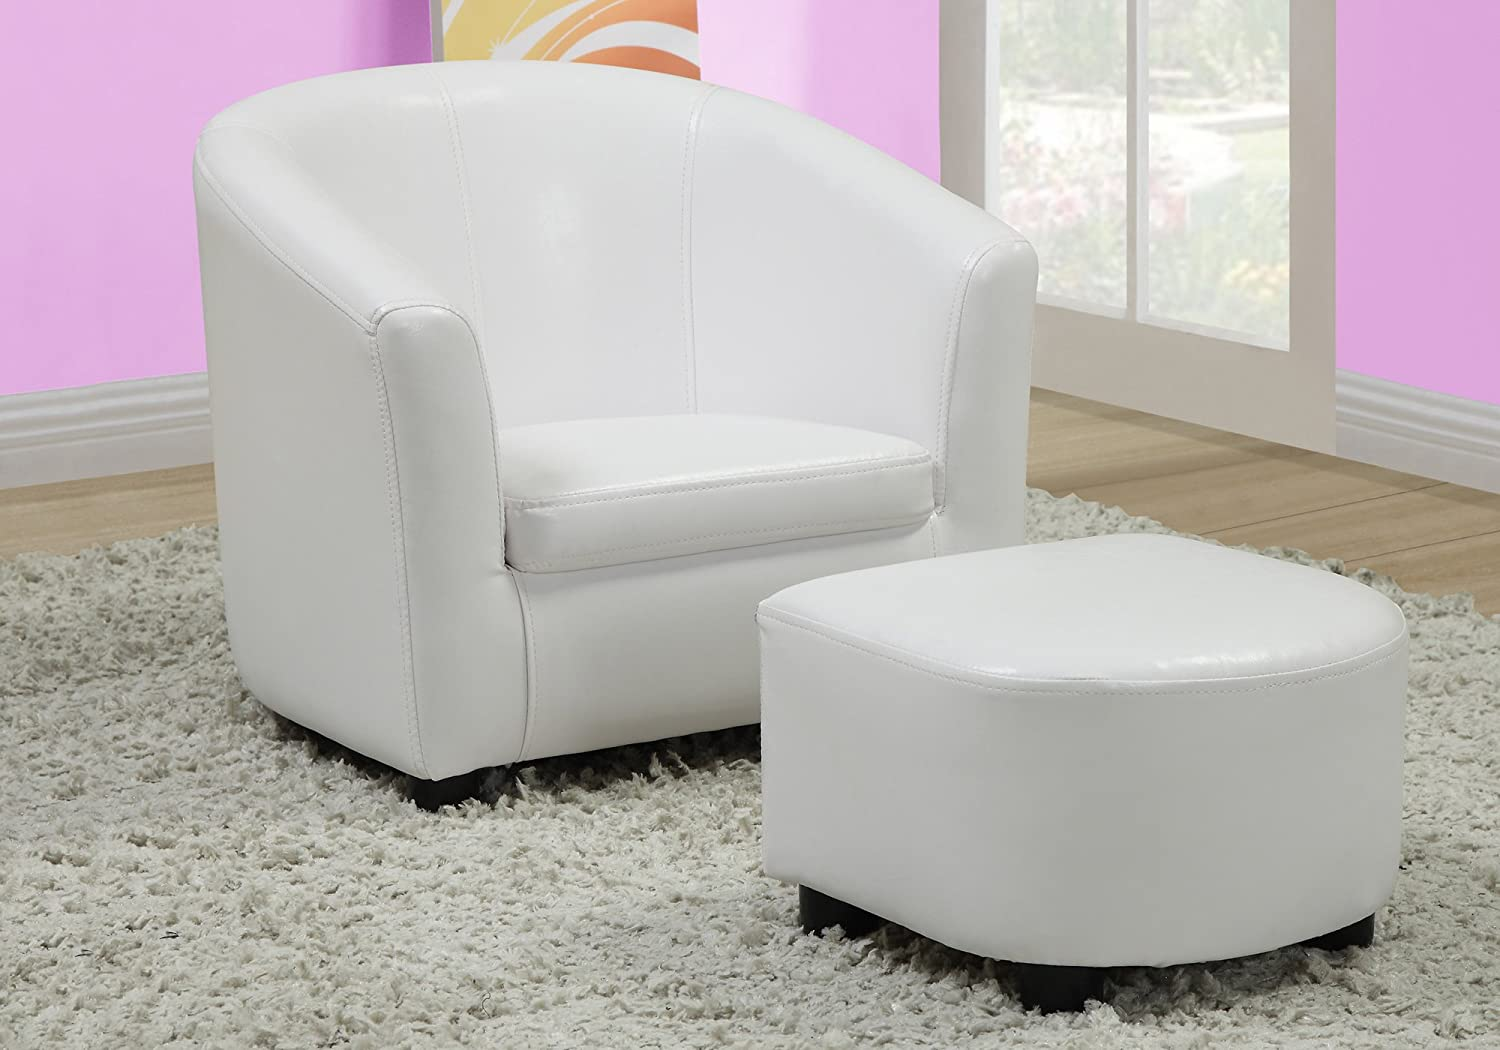 Outstanding Monarch Specialties Leather Look Juvenile Chair Ottoman White 2 Piece Set Bralicious Painted Fabric Chair Ideas Braliciousco